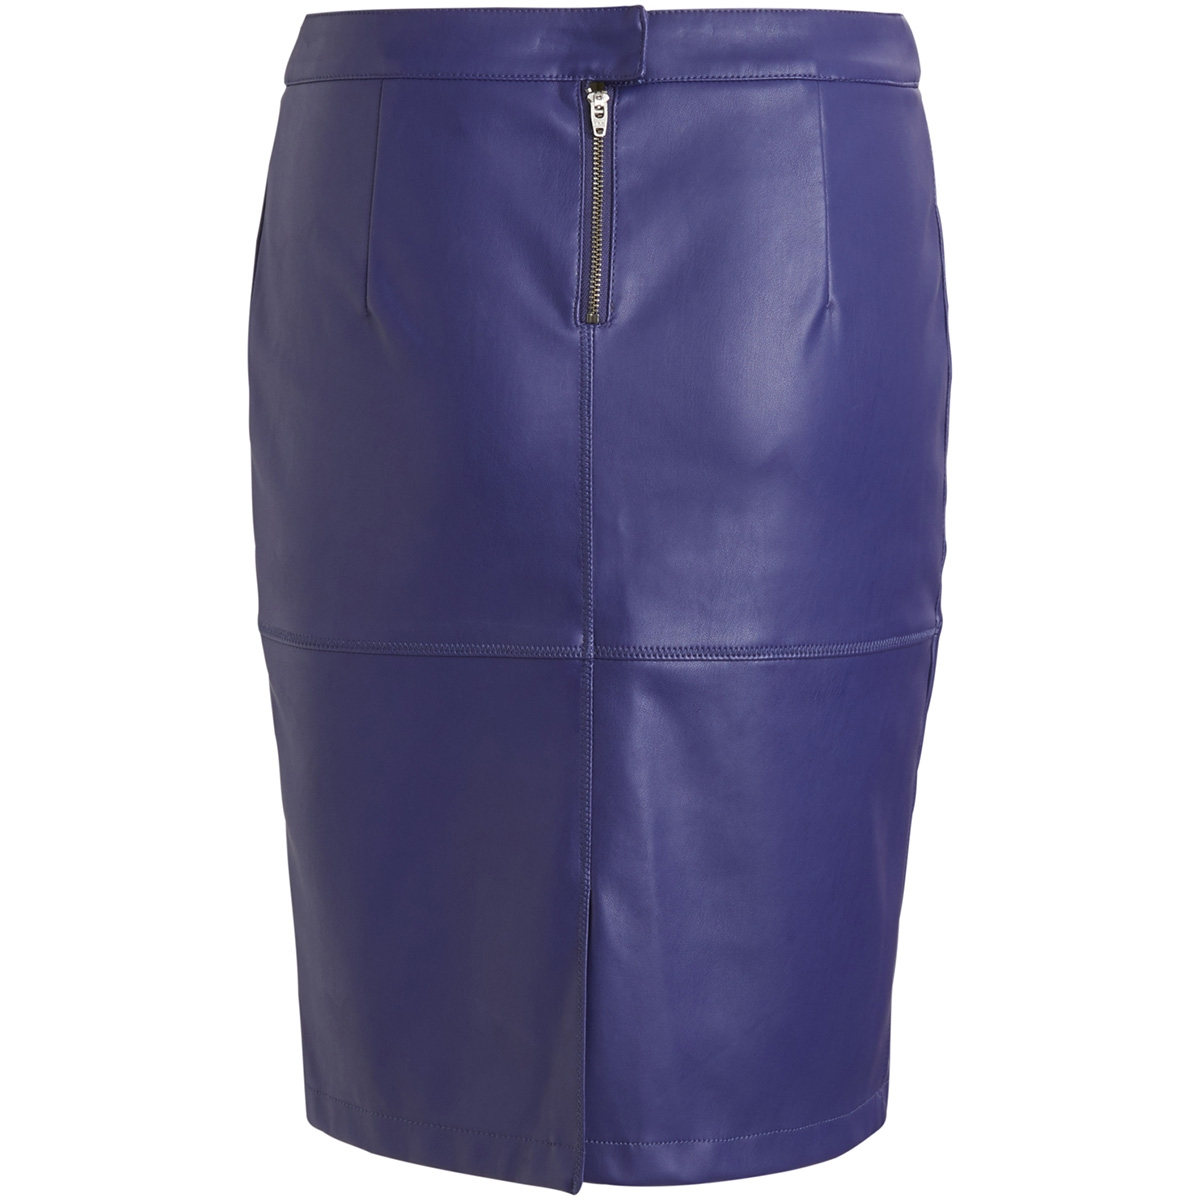 vipen new skirt-fav 14043497 vila rok surf the web